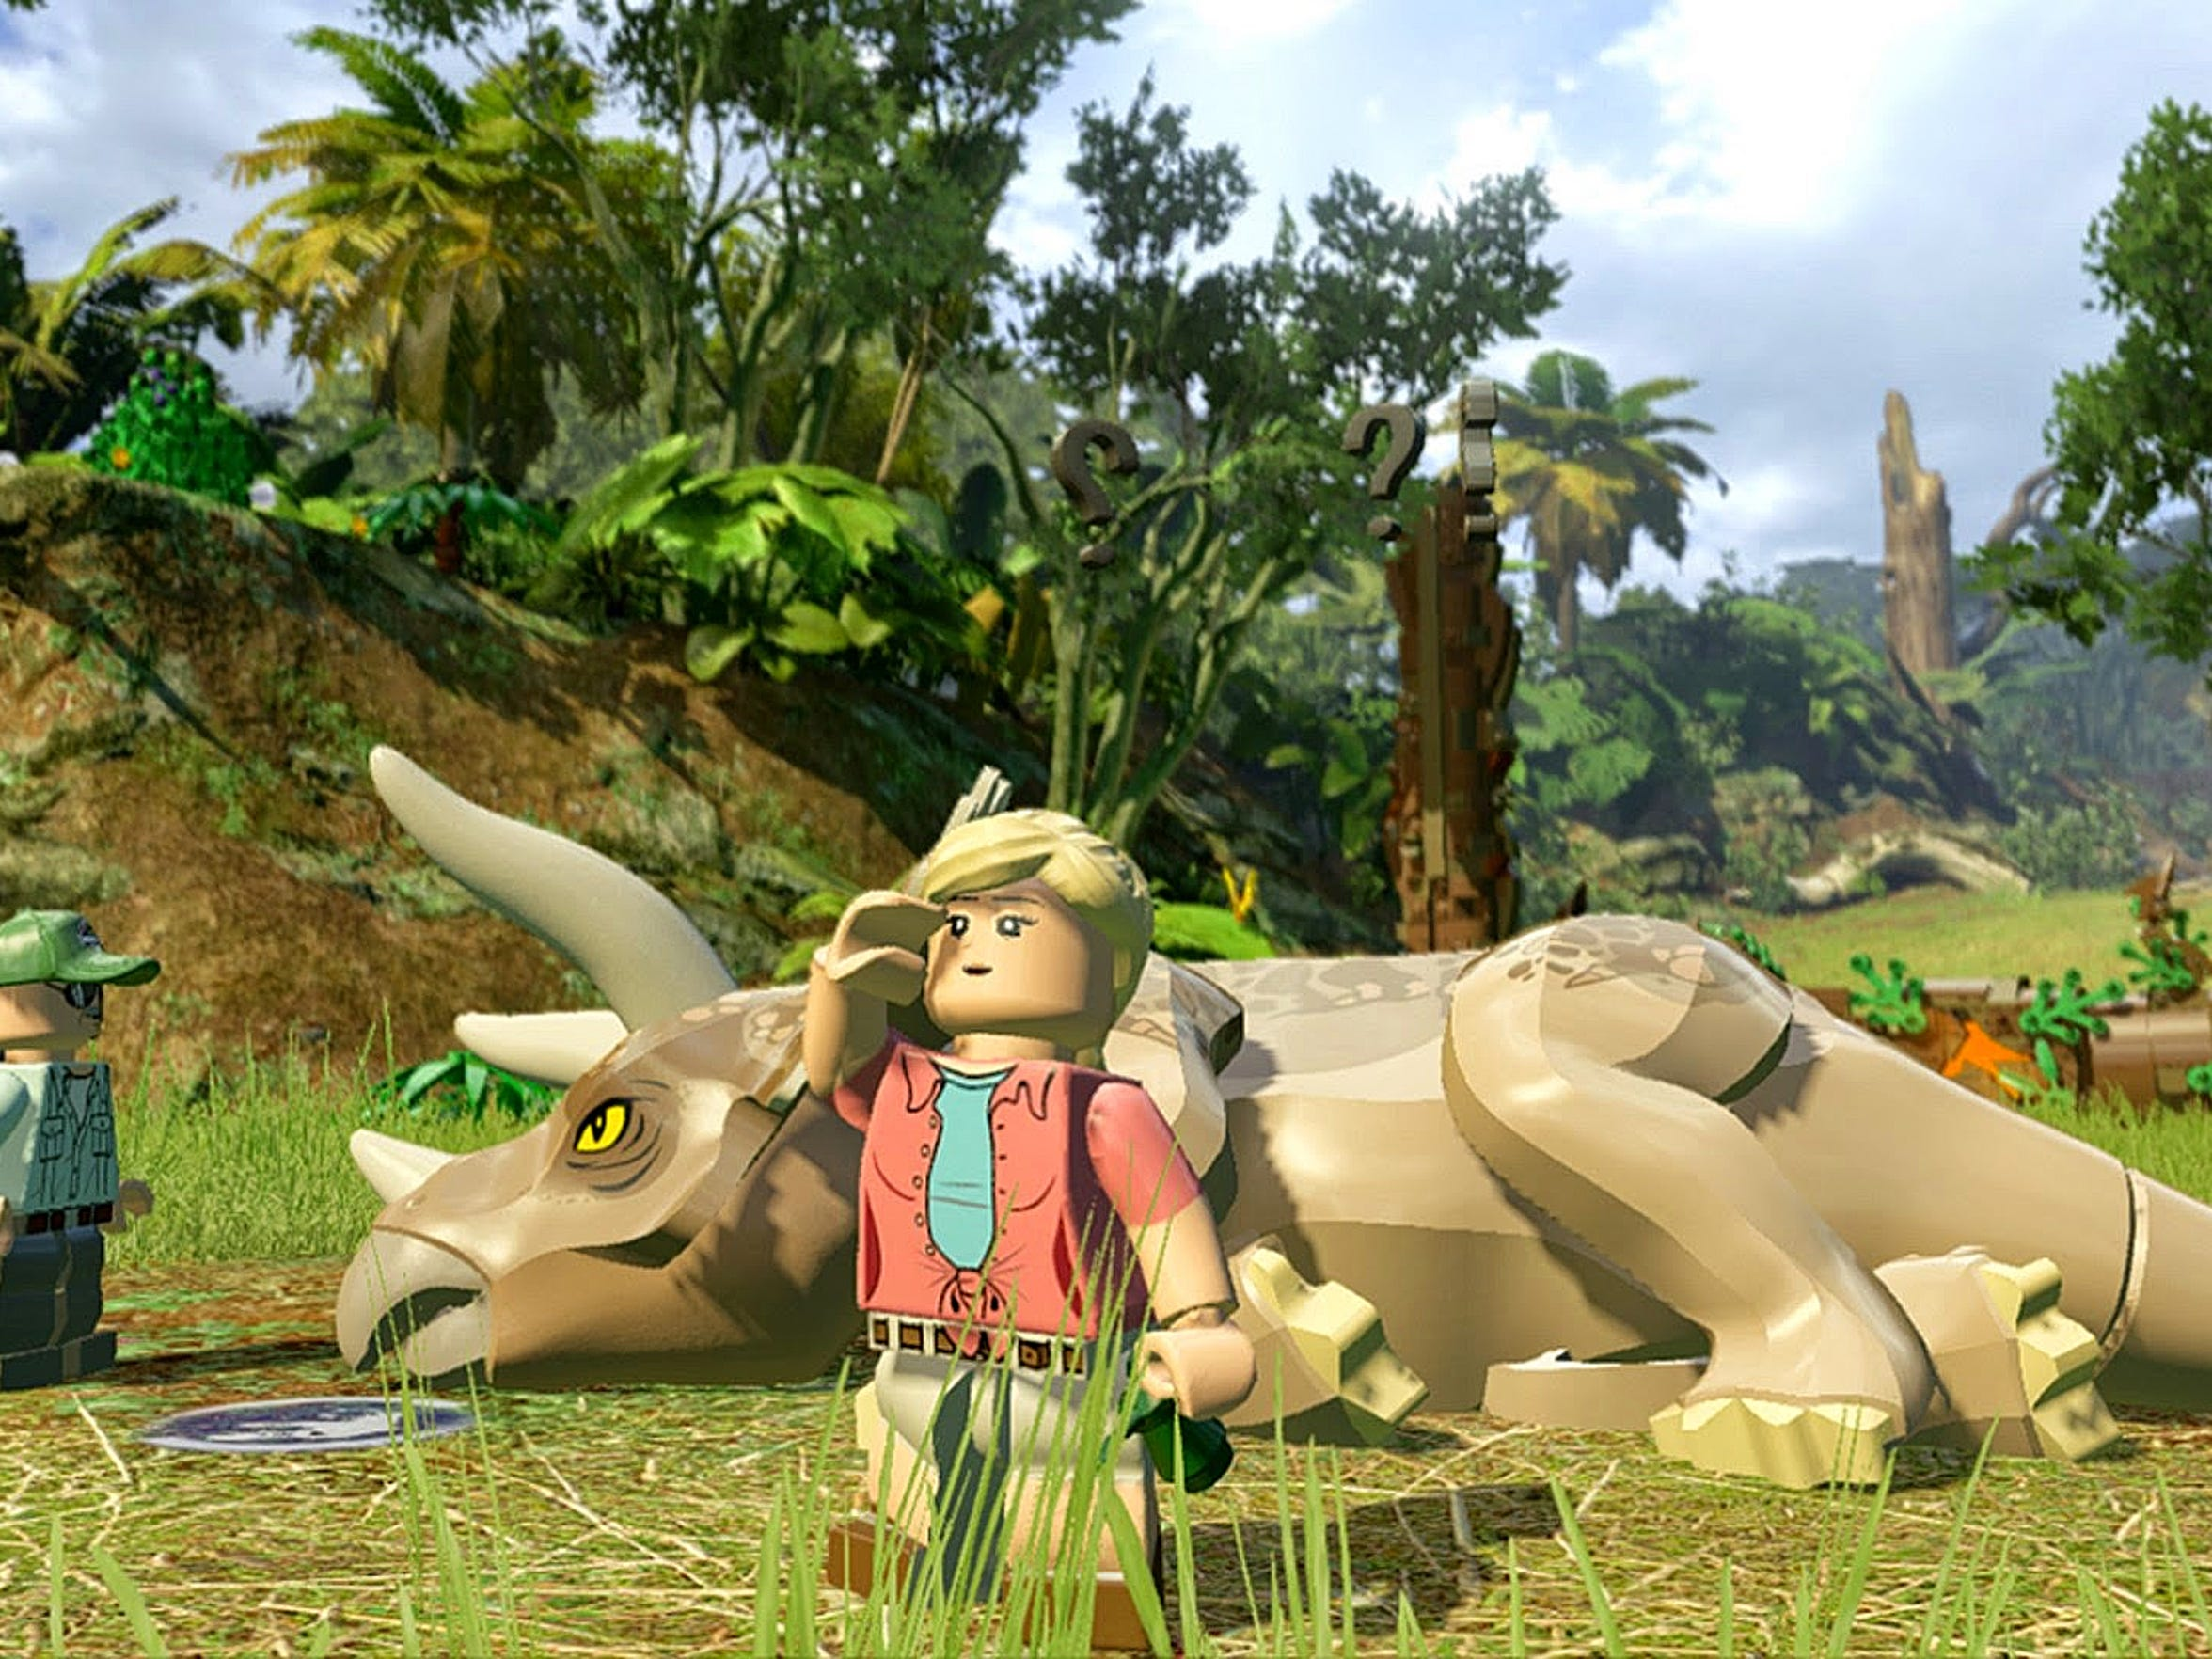 LEGO Jurassic World lets you relive iconic scenes in